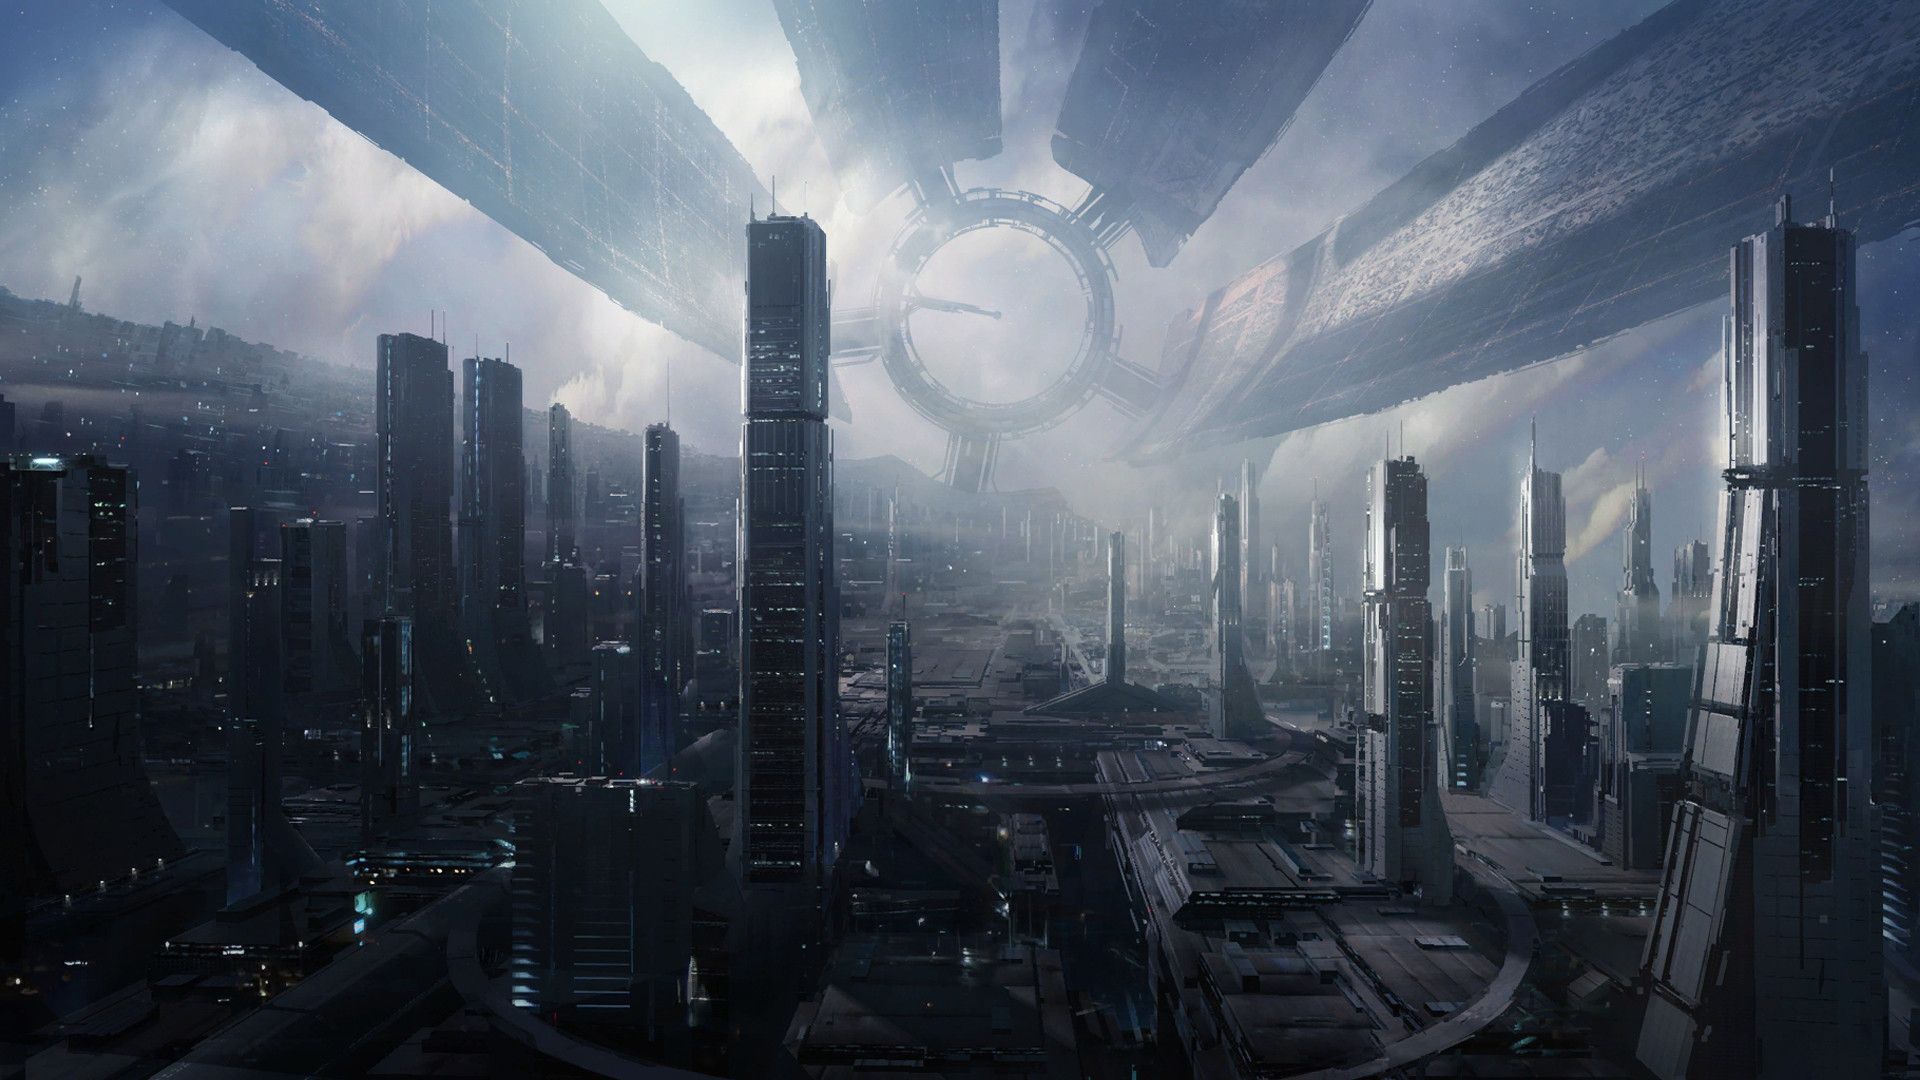 1920x1080 - Sci Fi Building Wallpapers 11